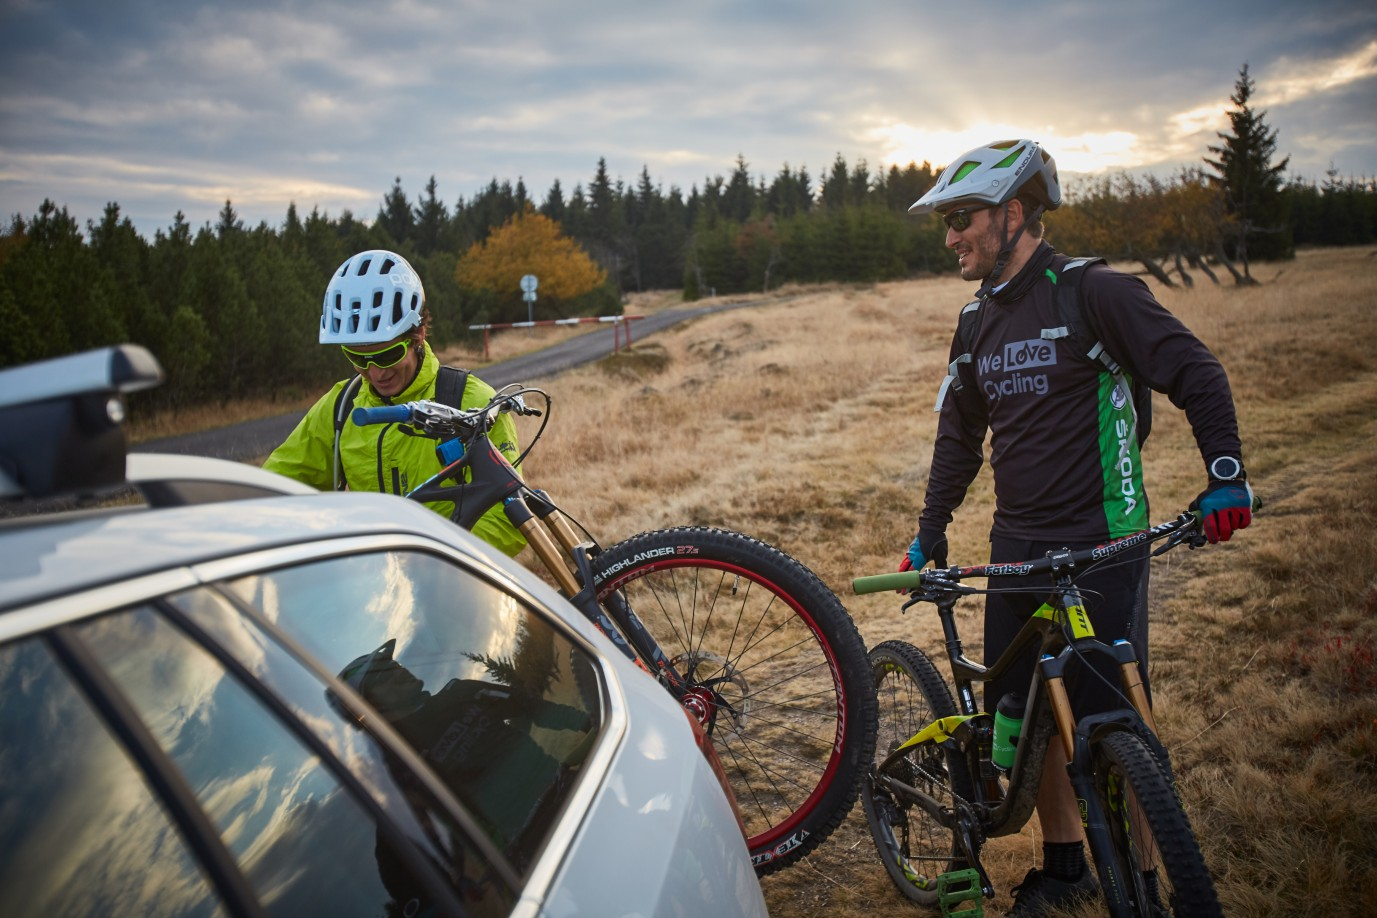 škoda Octavia Scout Will Take You All The Way To The Trail